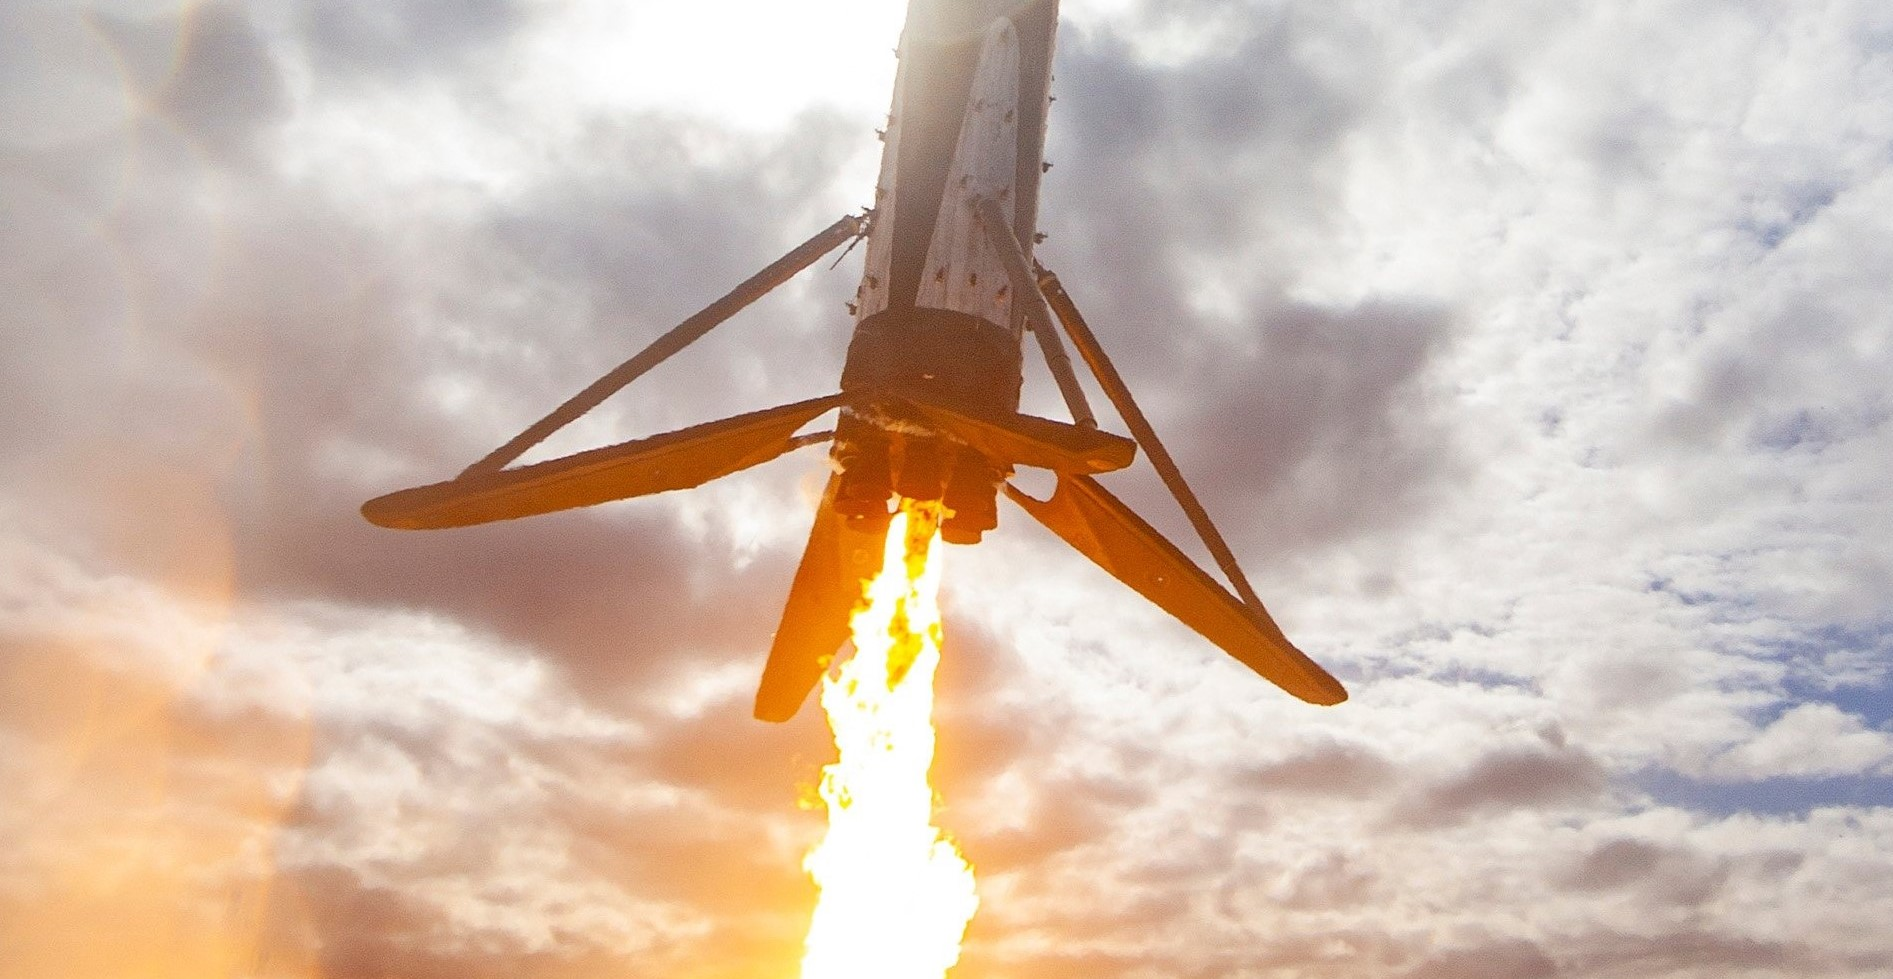 SpaceX's surprise Falcon 9 drone ship landing explained ahead of Cargo Dragon launch